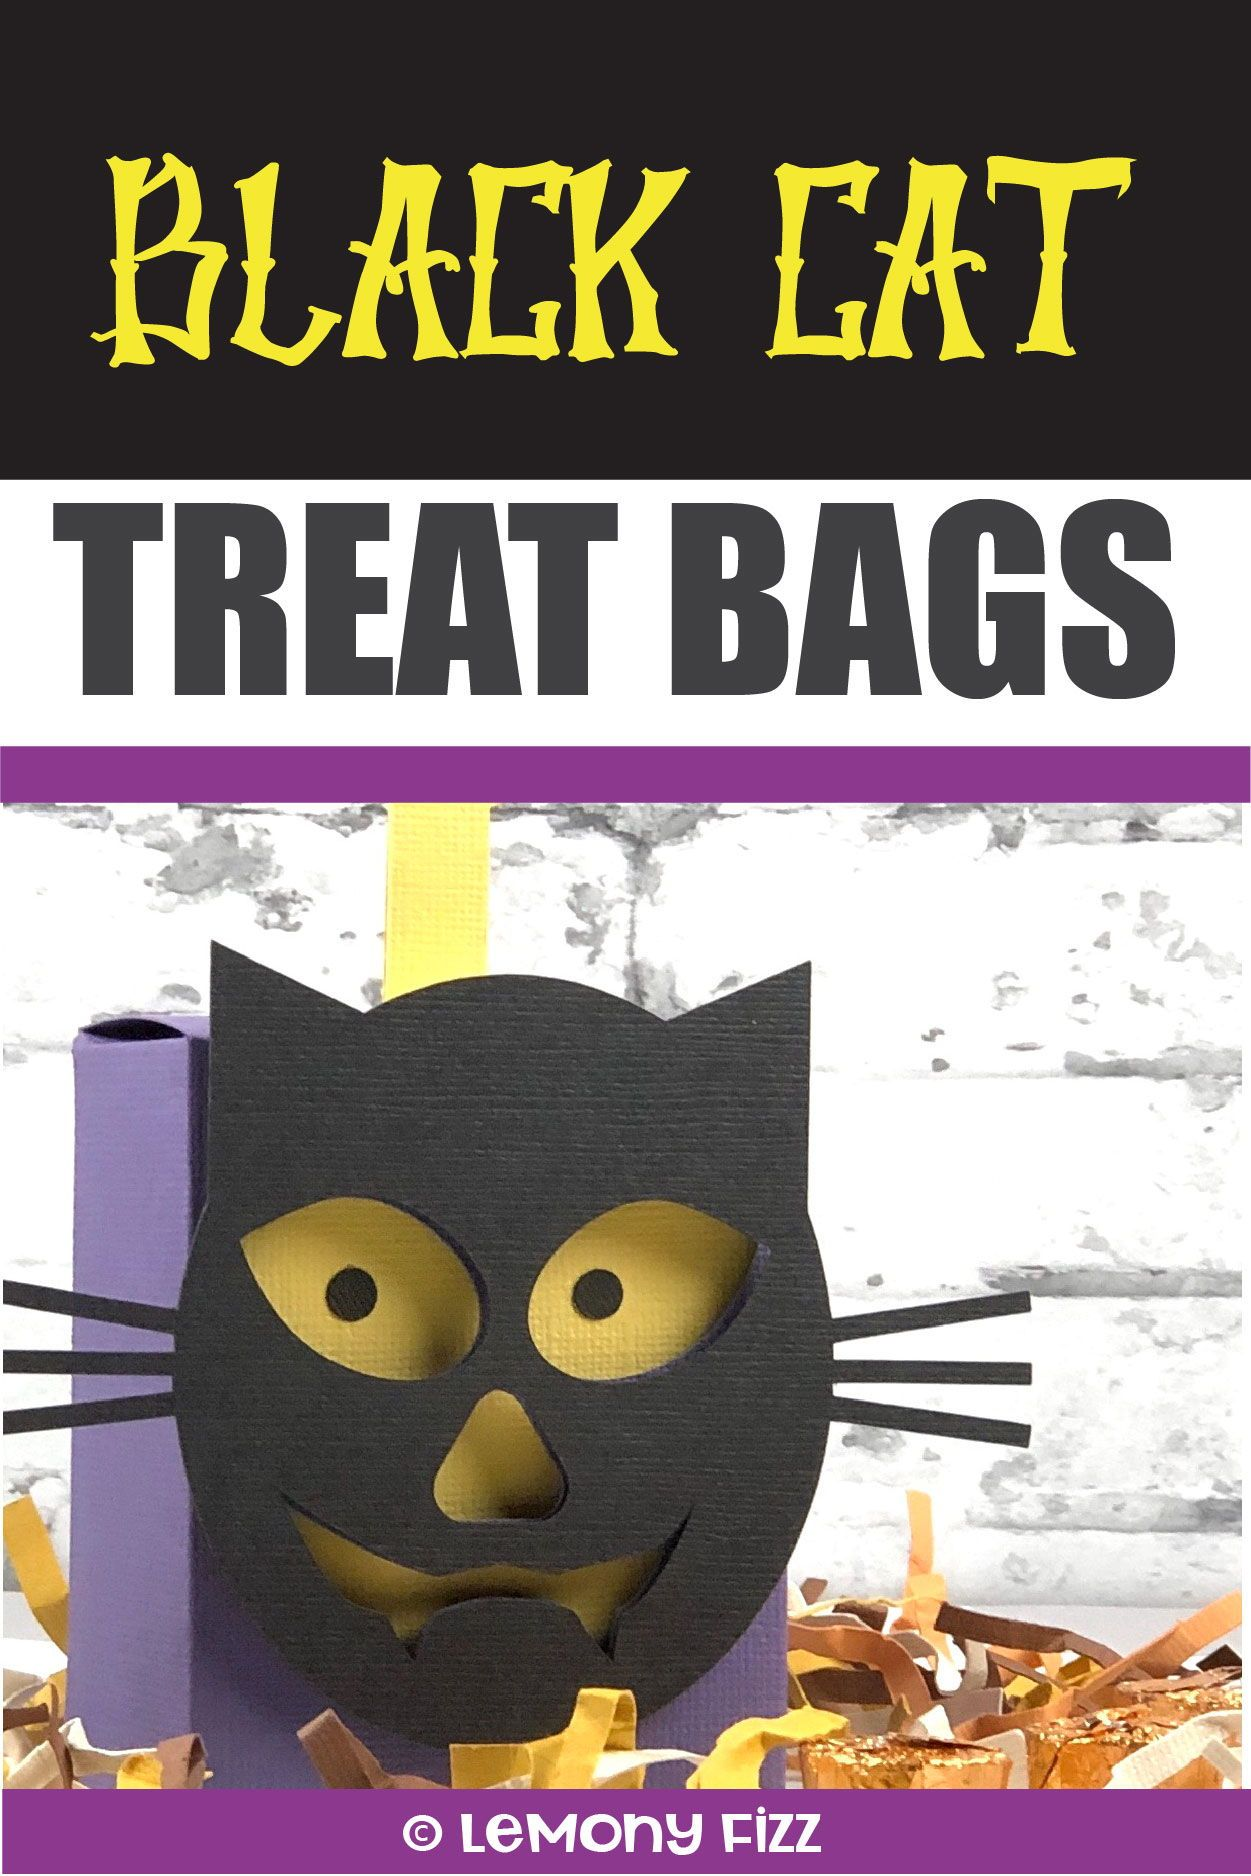 It's a Group of Spooky Halloween Treat Bags Halloween